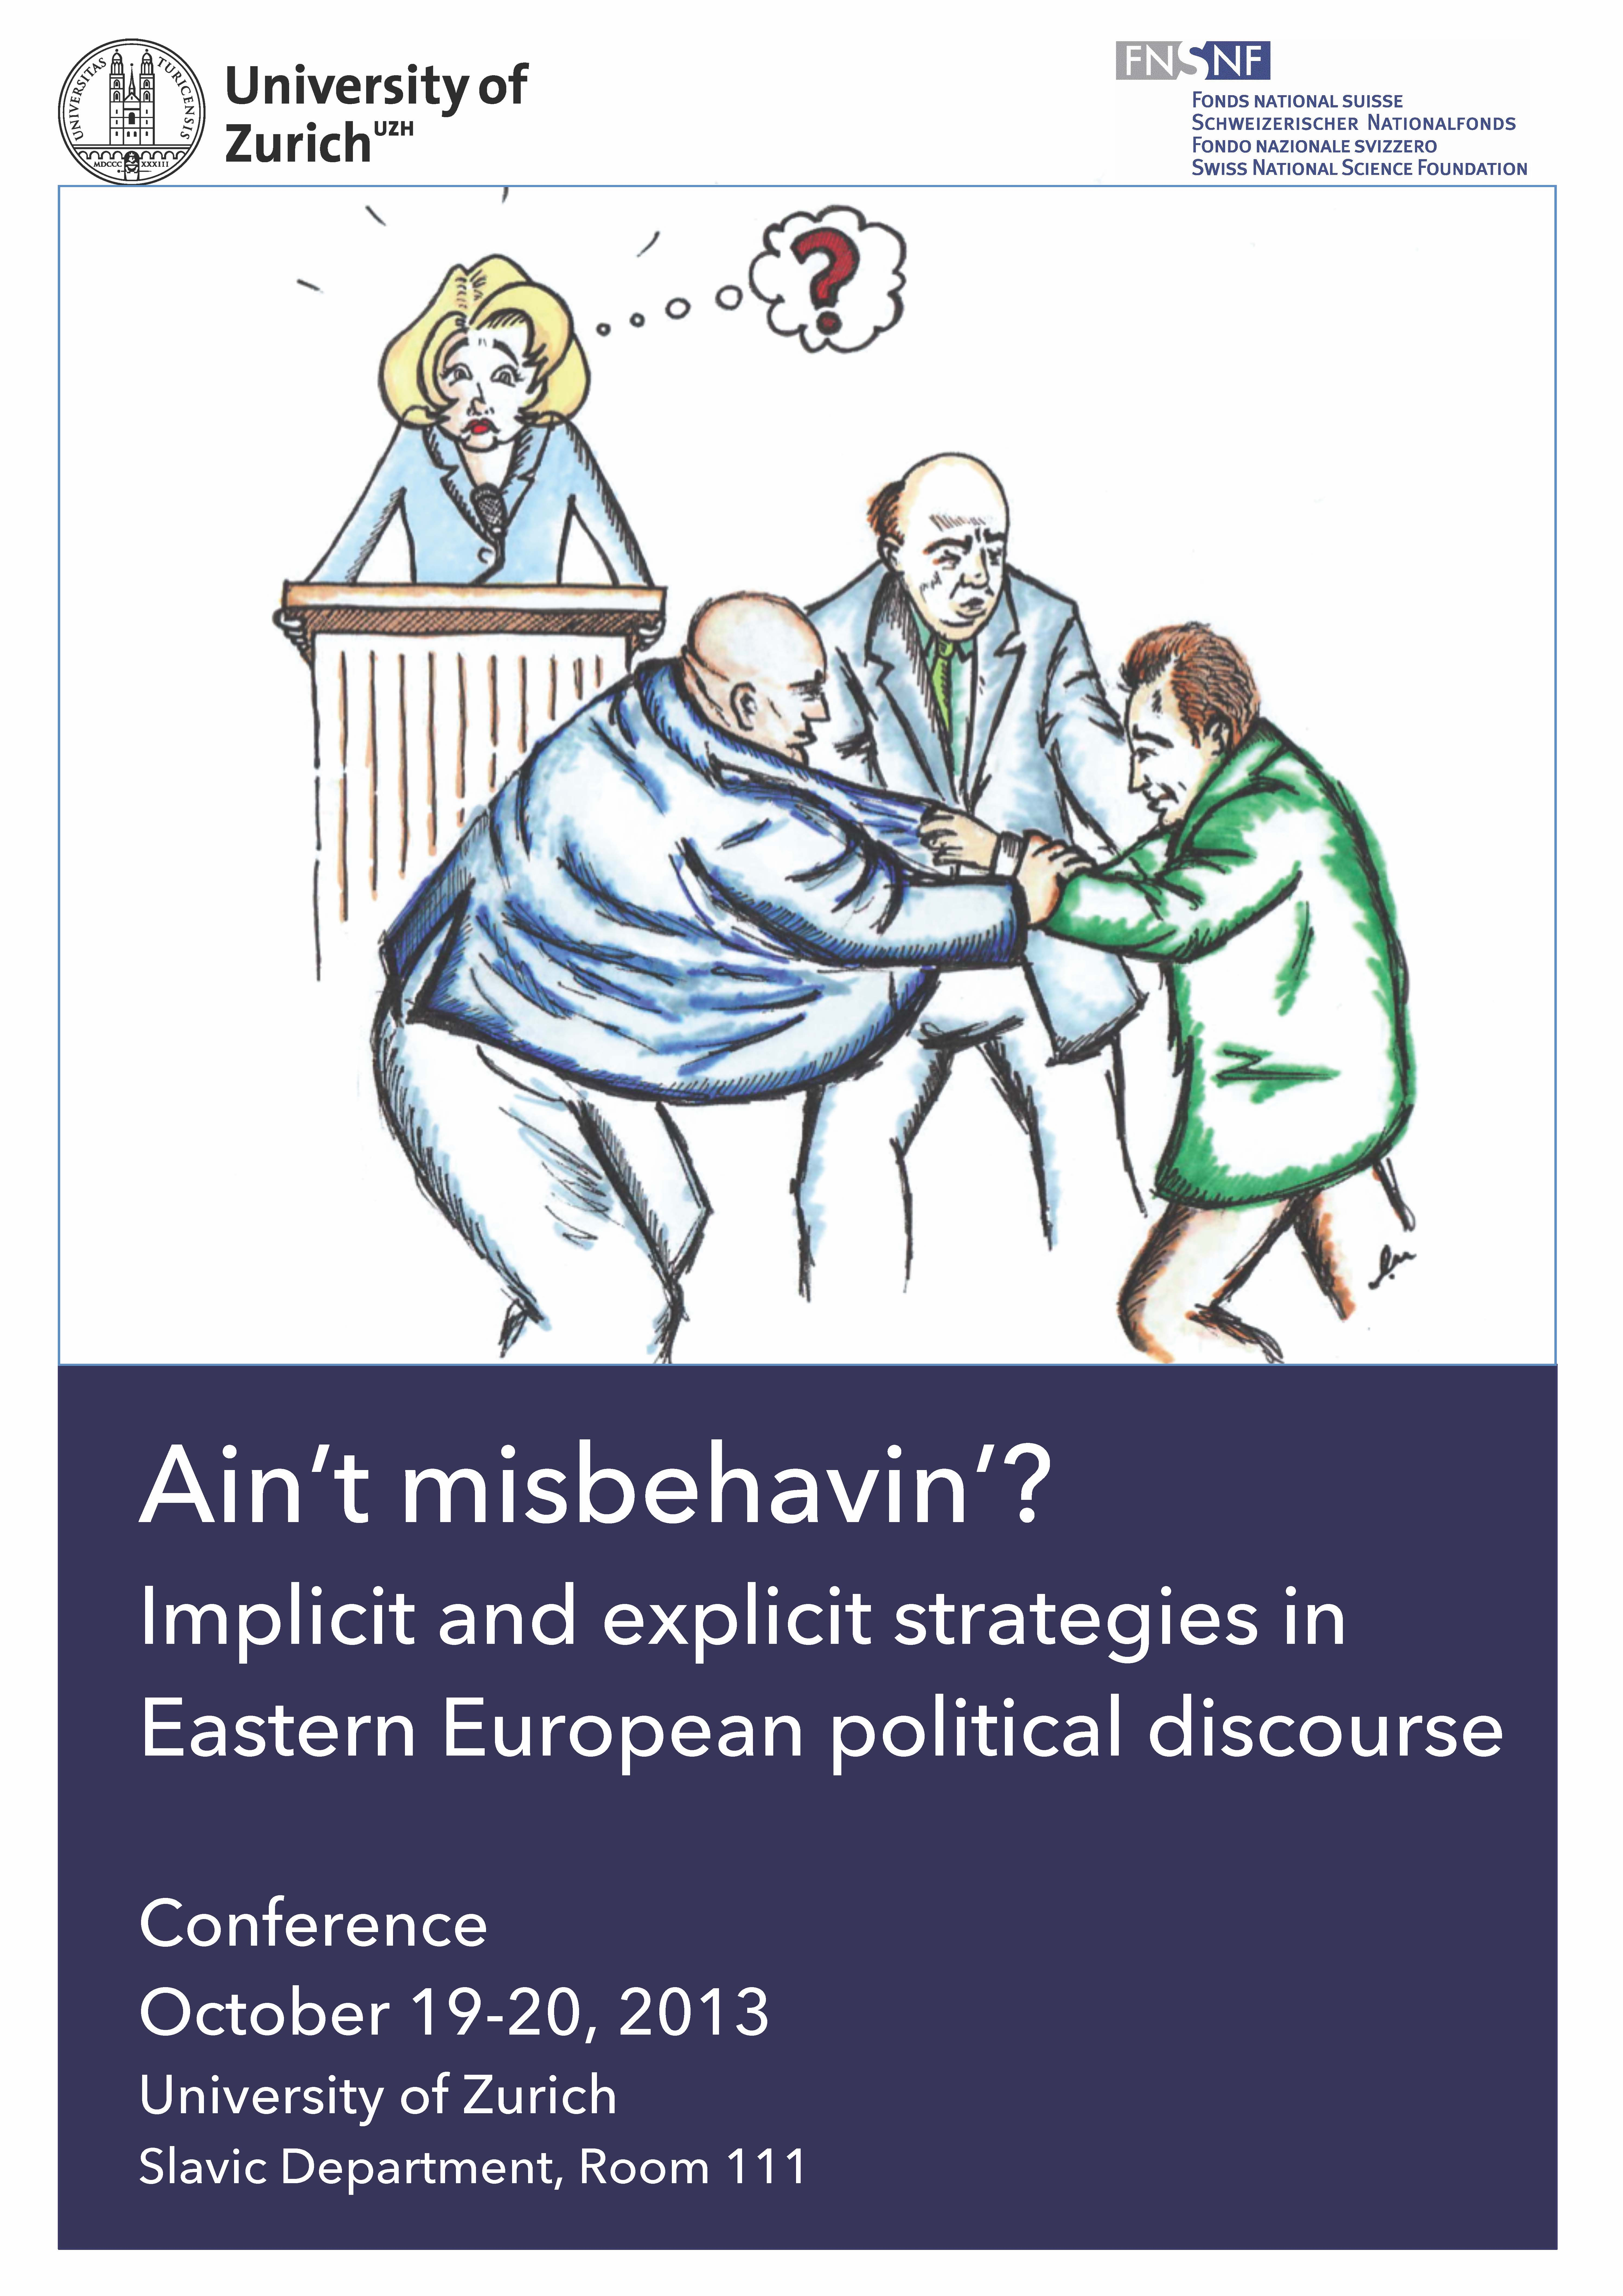 Ain't misbehavin'? Implicit and explicit strategies in Eastern European political discourse